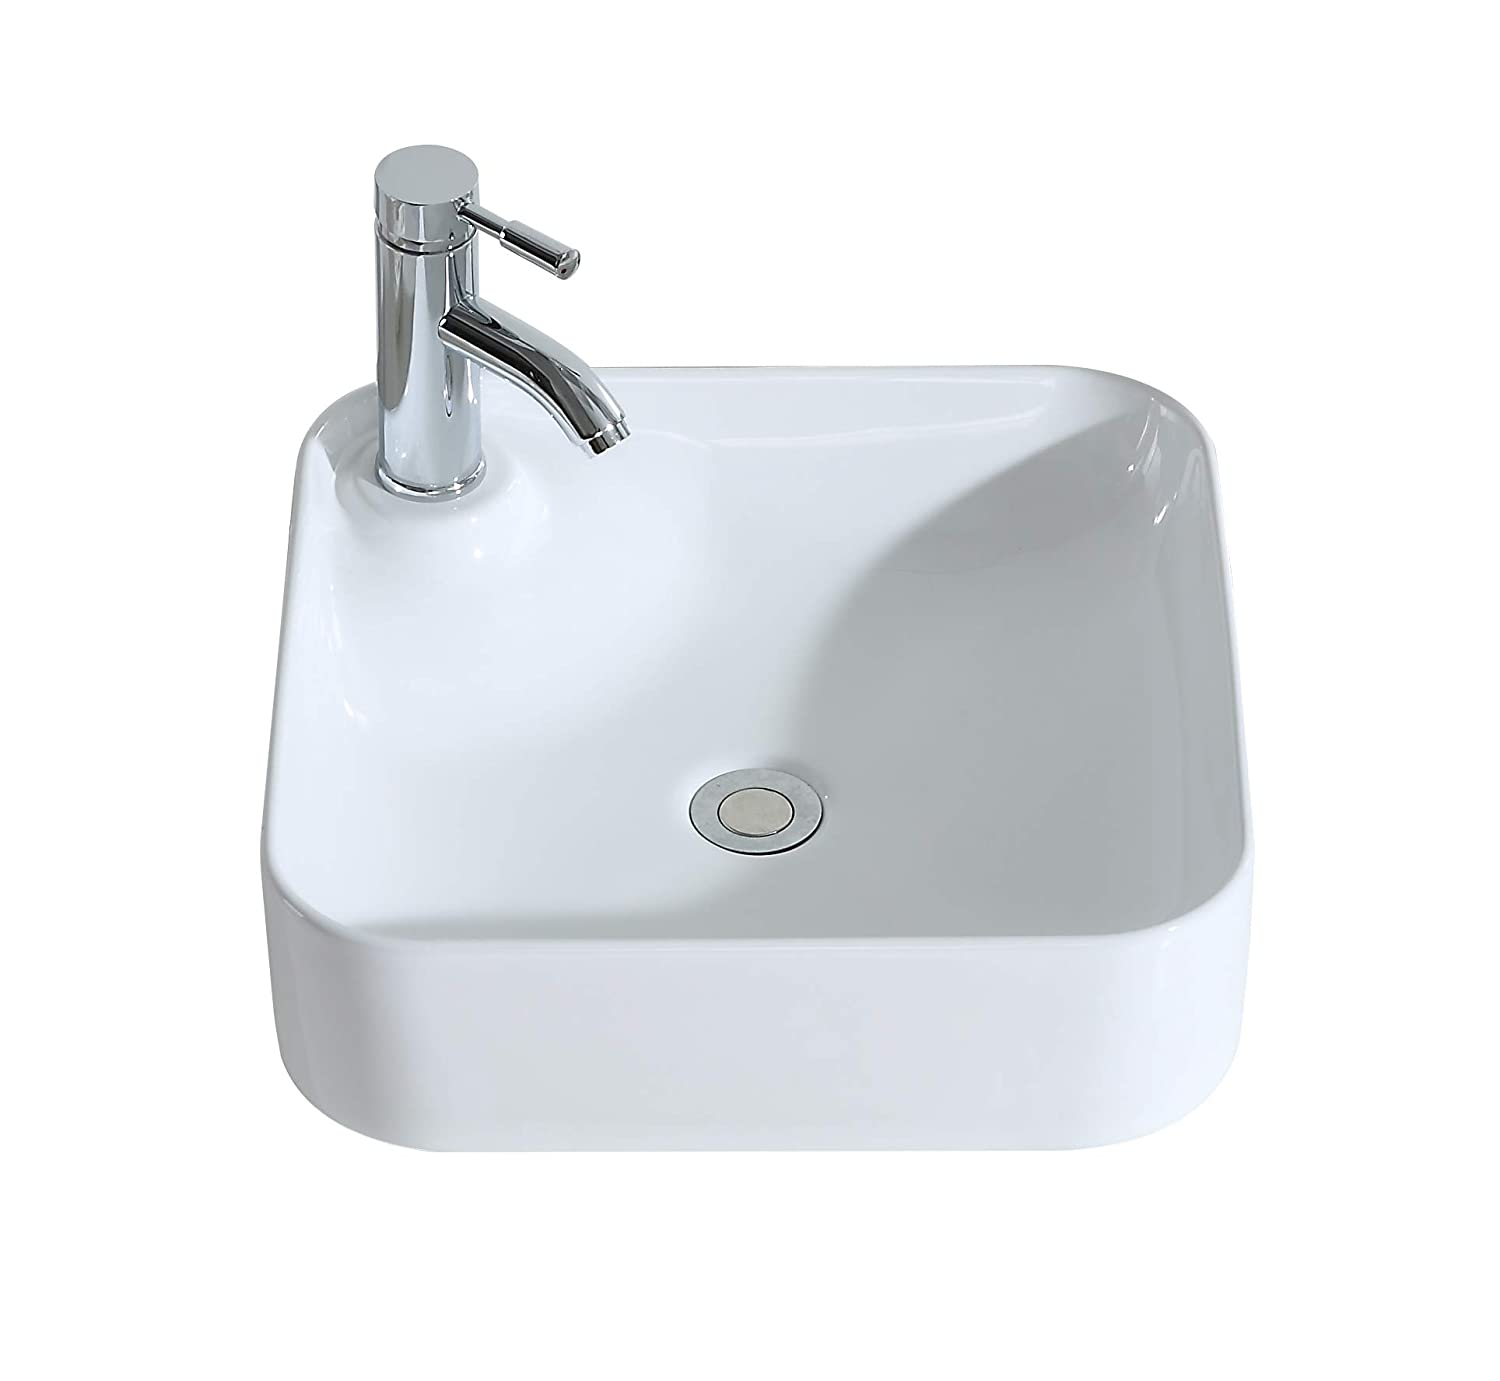 ERIDANUS Wash Basin Sink, [Series Jonny], Ceramic Vessel Sink with [Smooth Finish] Countertop Mounted [Easy Installation] for Lavatory Vanity Cabinet, Gloss White